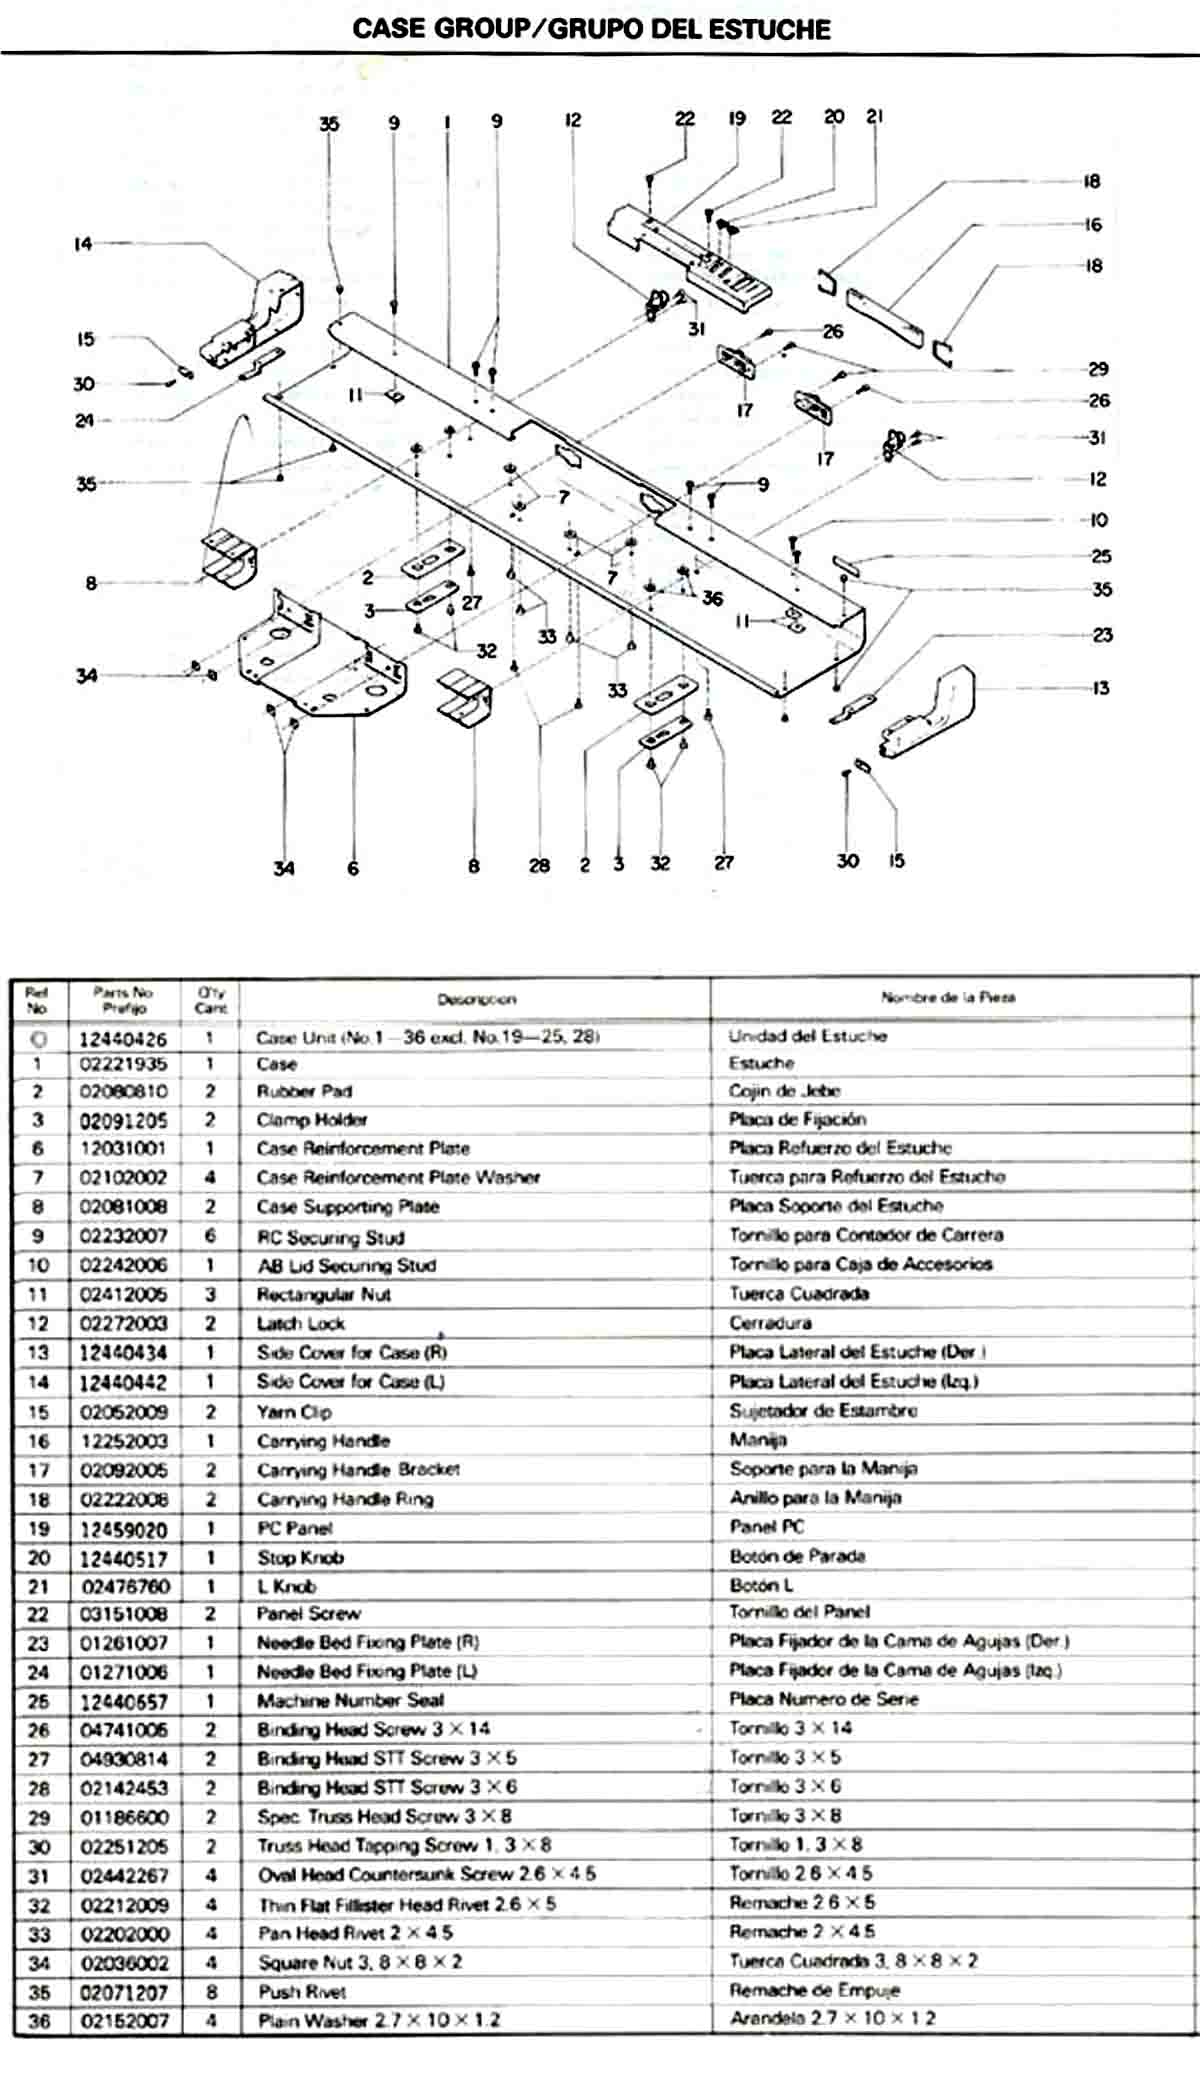 BROTHER SILVER REED KNITTING MACHINE PARTS TECH